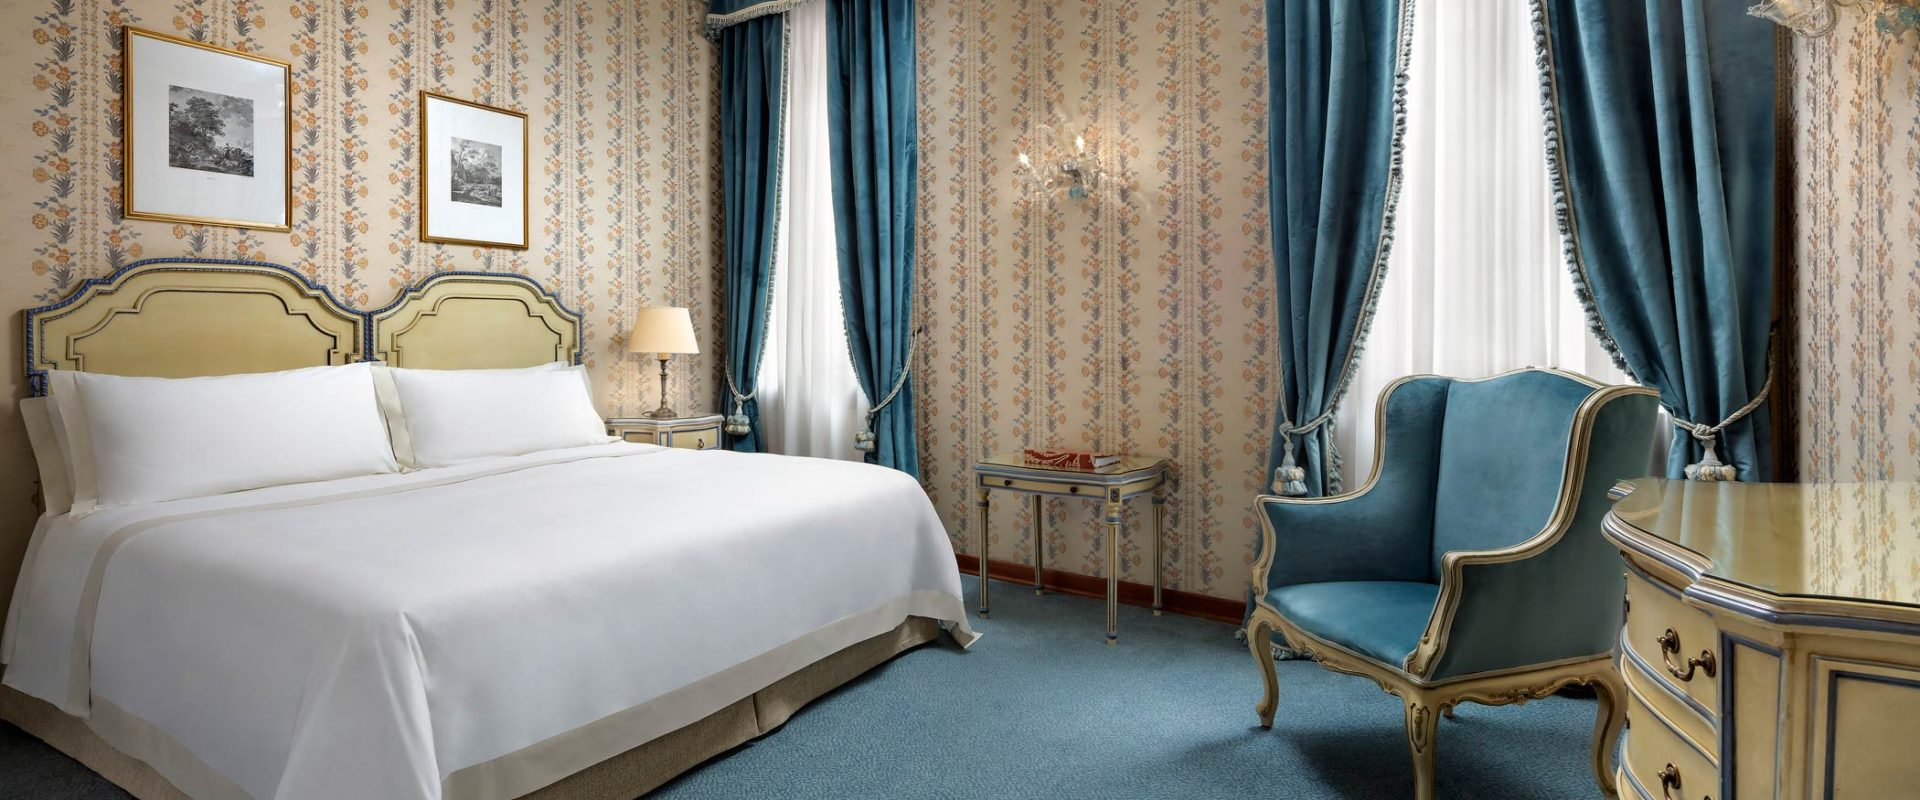 Hotel-Danieli-Venice-Lagoon-View-Junior-Suite-Bedroom-Palazzo-Casa-Nuova